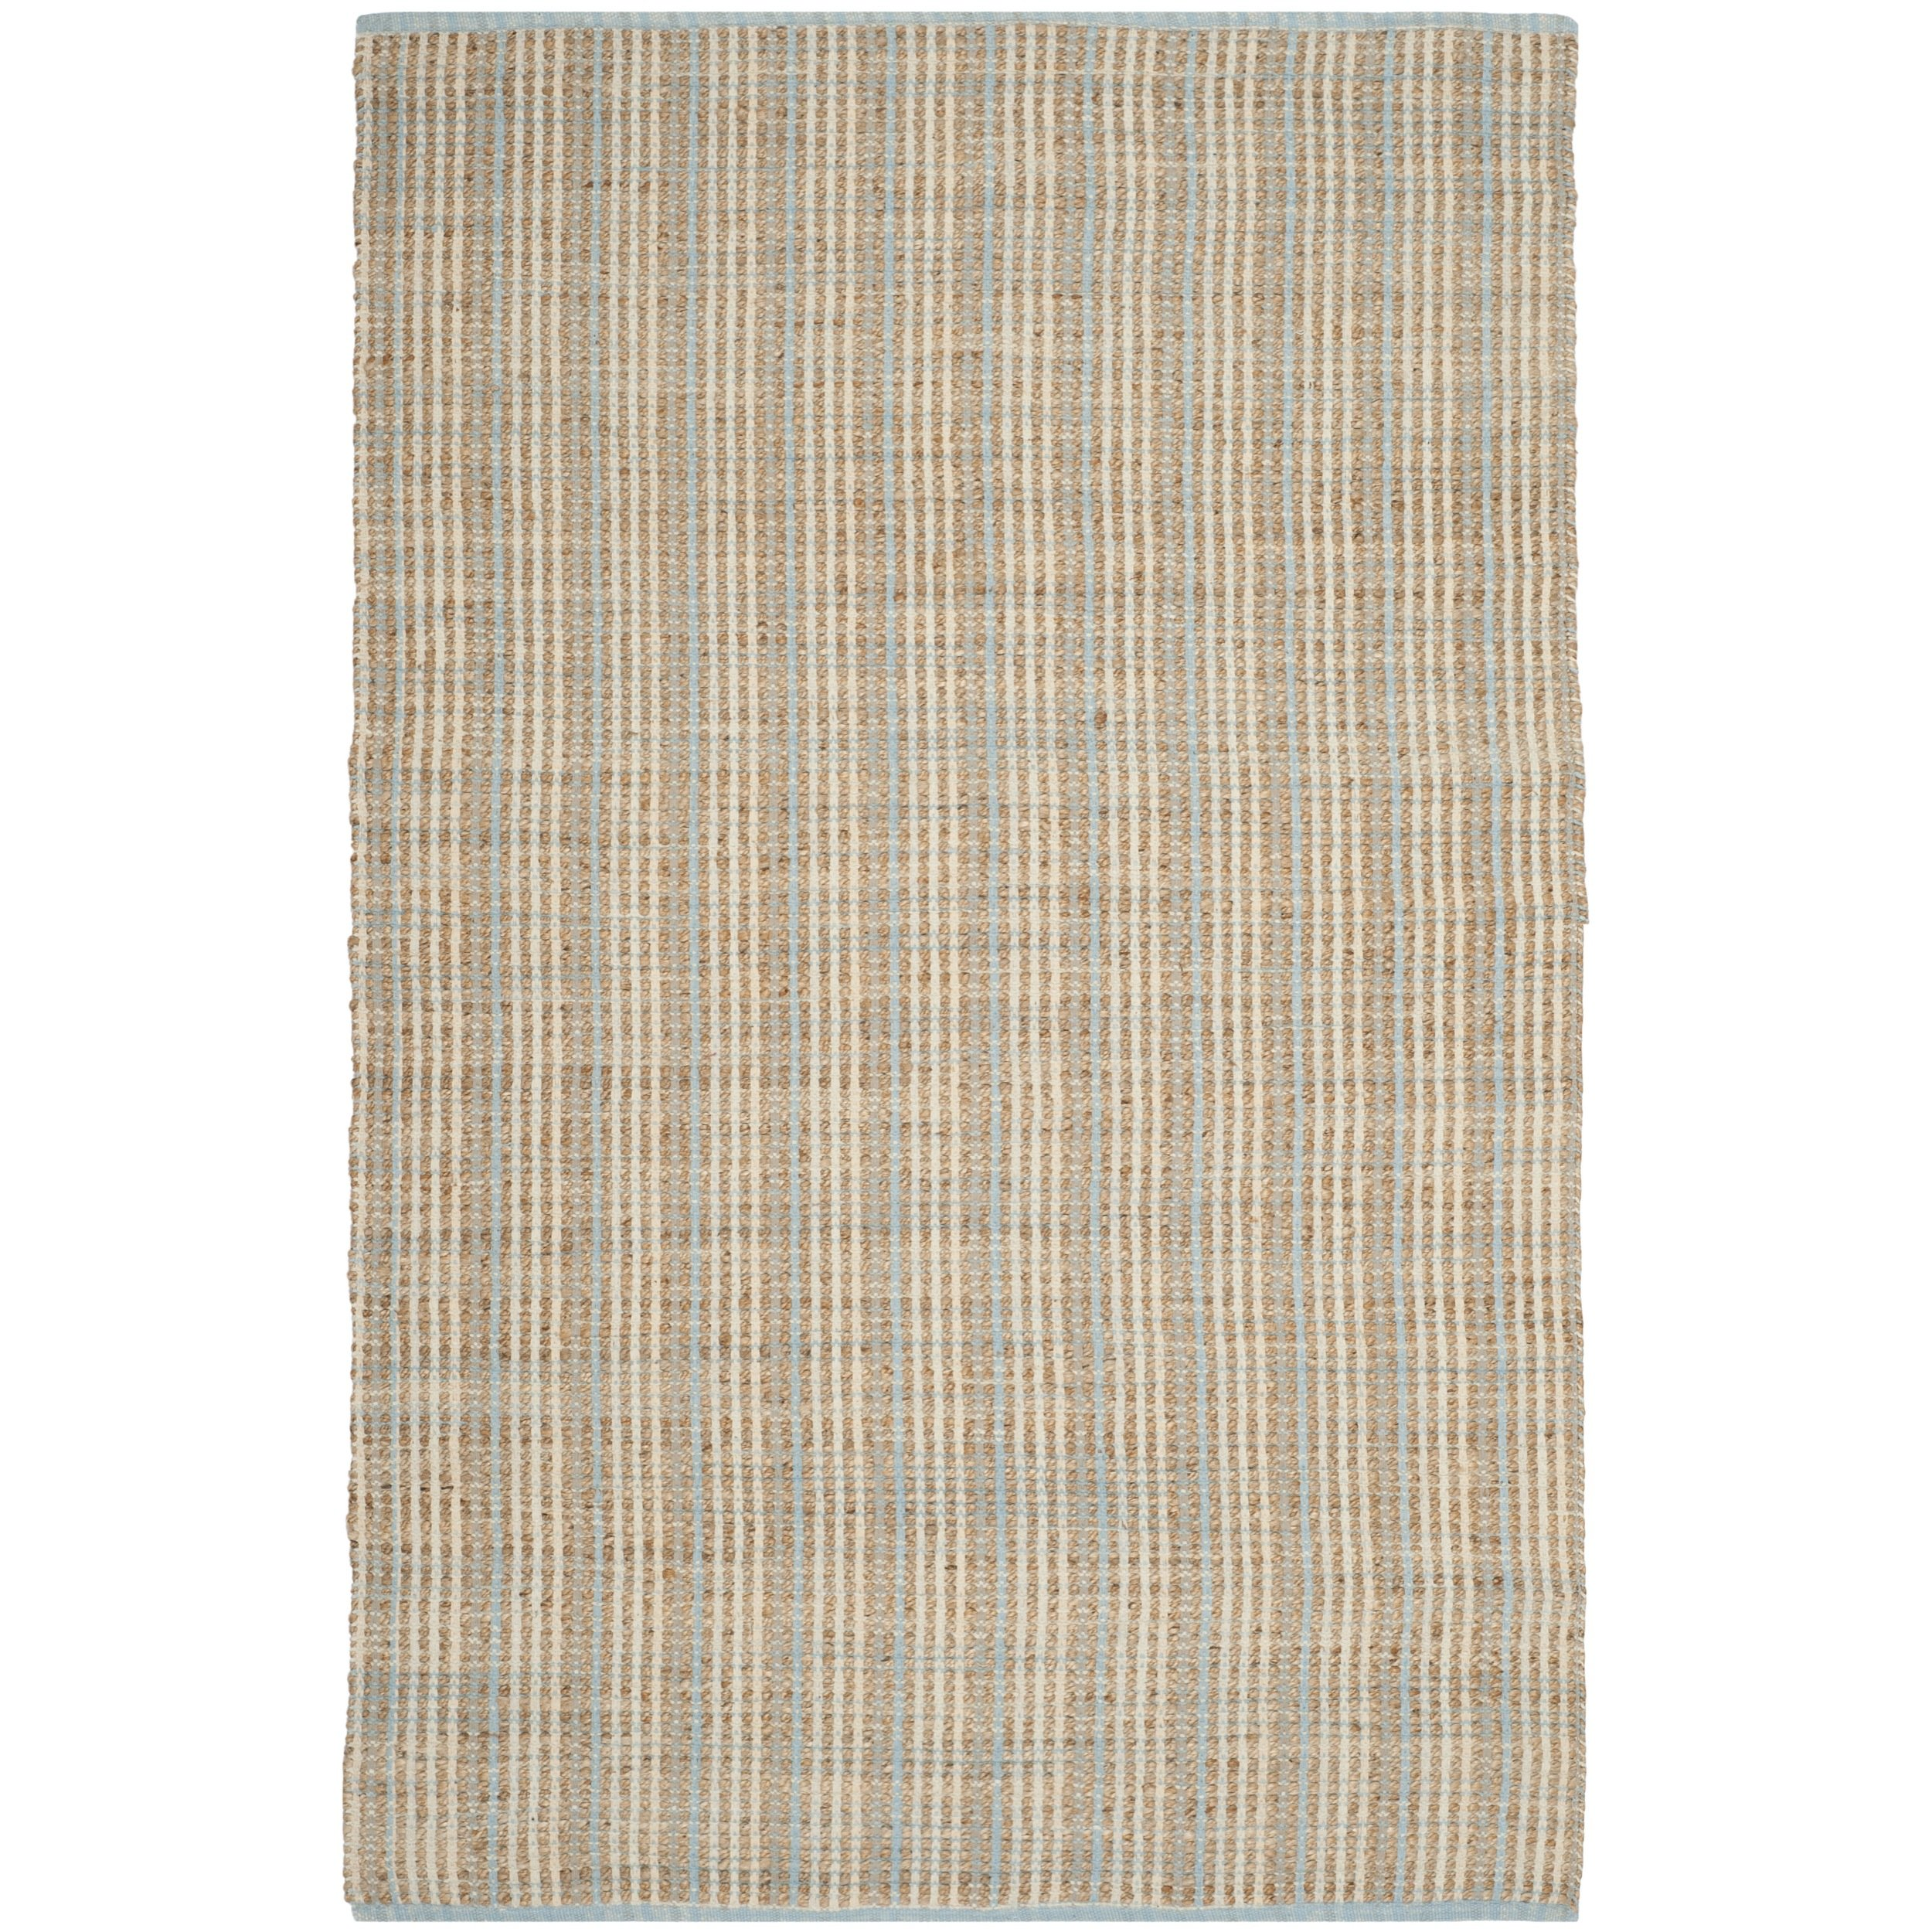 Safavieh Cape Cod Collection CAP831A Hand Woven Natural Jute and Cotton Striped Area Rug (6' x 9')